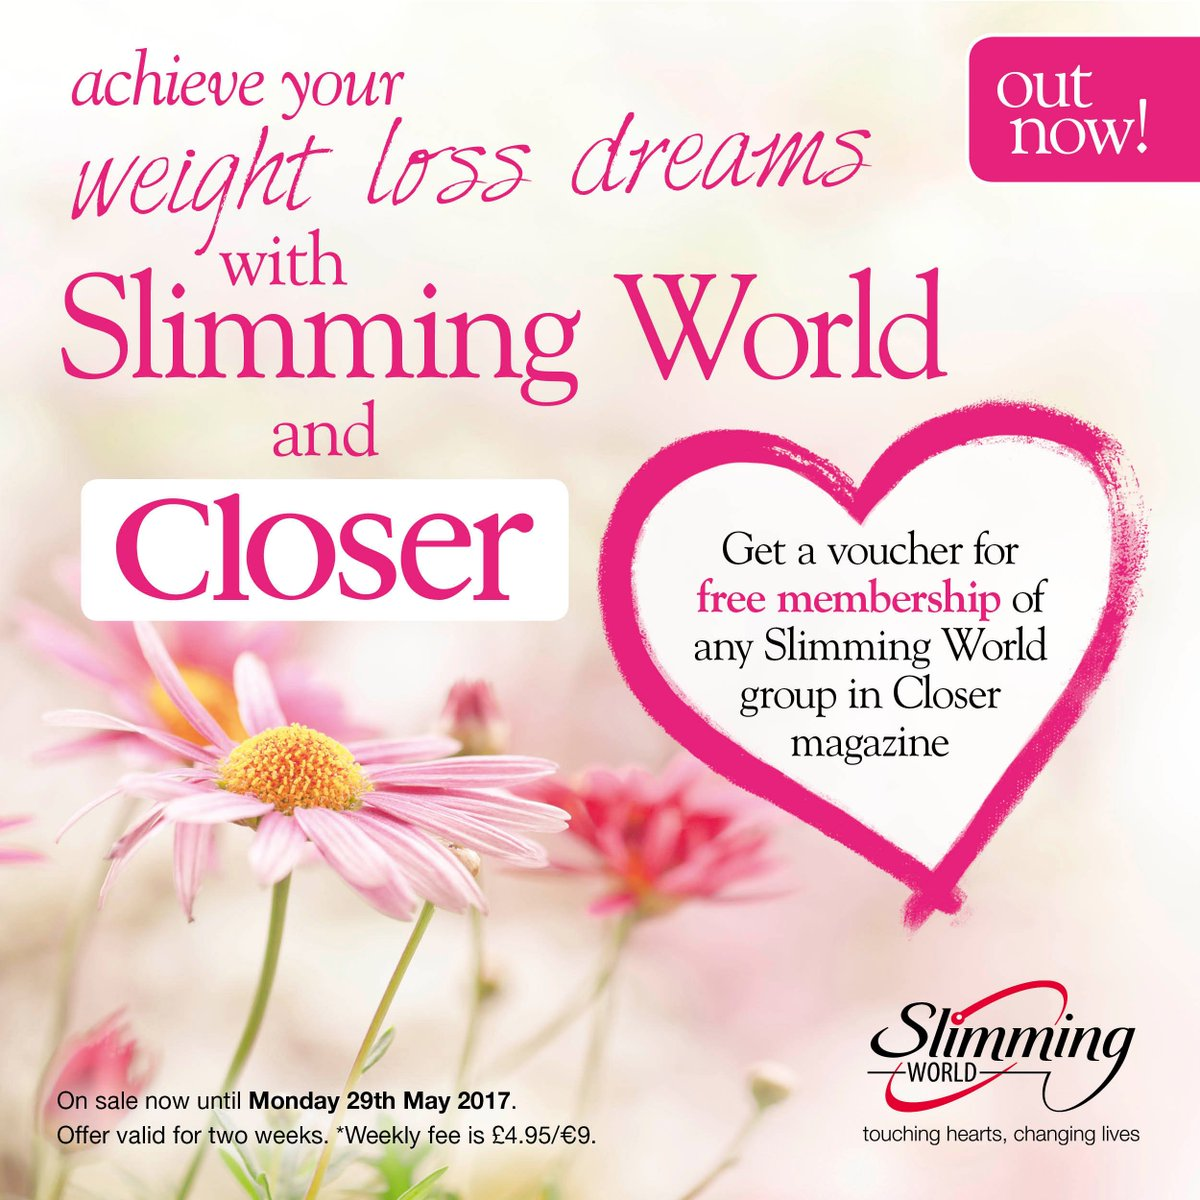 Slimming world on twitter get free slimmingworld membership in slimming world on twitter get free slimmingworld membership in closeronline on sale today what are you waiting for httpstnroqvst8qi m4hsunfo